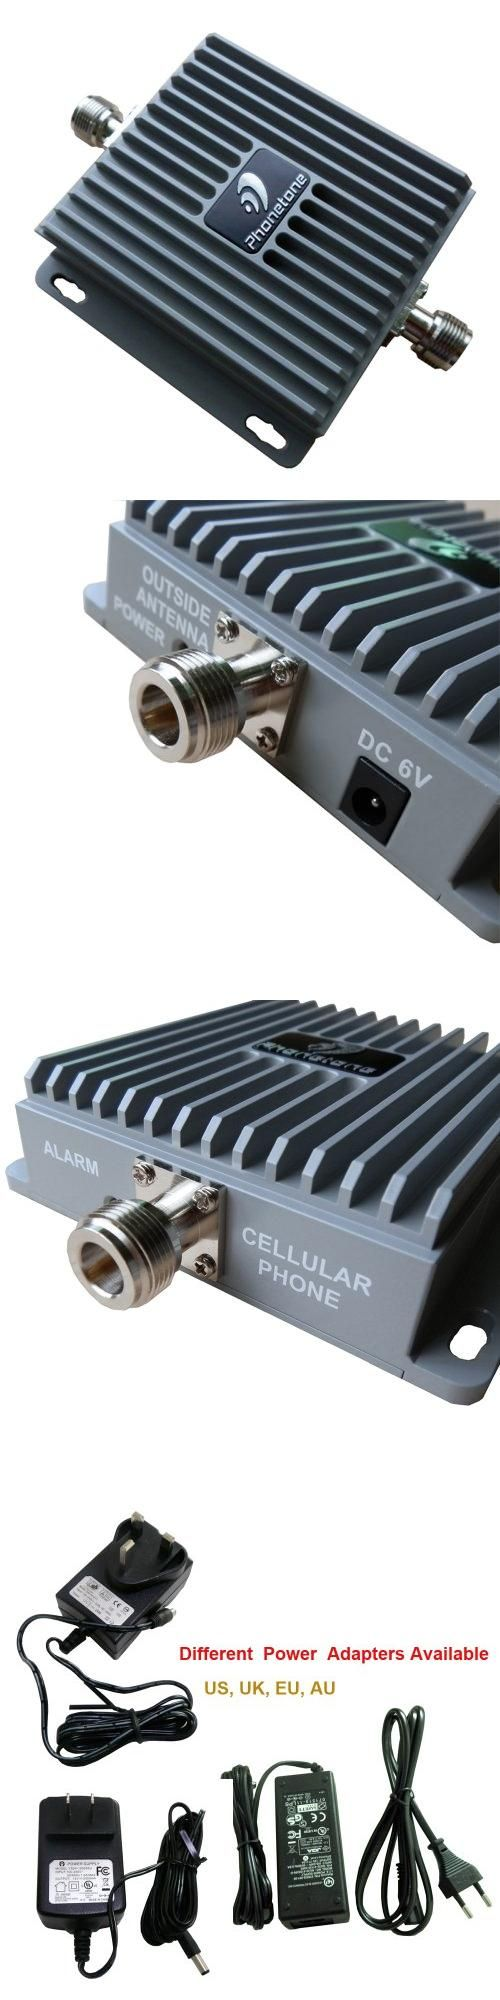 Standalone High Gain 65dB GSM WCDMA 850MHz/2100MHz Mobile Cell Phone Signal Booster/Repeater Amplifier Frequency Range :824-849MHz/1920-1980MHz,869-894MHz/2110-2170MHz. Standard Supported : CDMA, WCDMA, GSM, EDGE, TDMA and AMPS etc.. Max. Gain (dB) :65dB. I/O Port : N-Female on both ends. Power Supply : AC100~240V 50/60Hz 1A; DC 6V/2.5A.  #Phonetone #Wireless